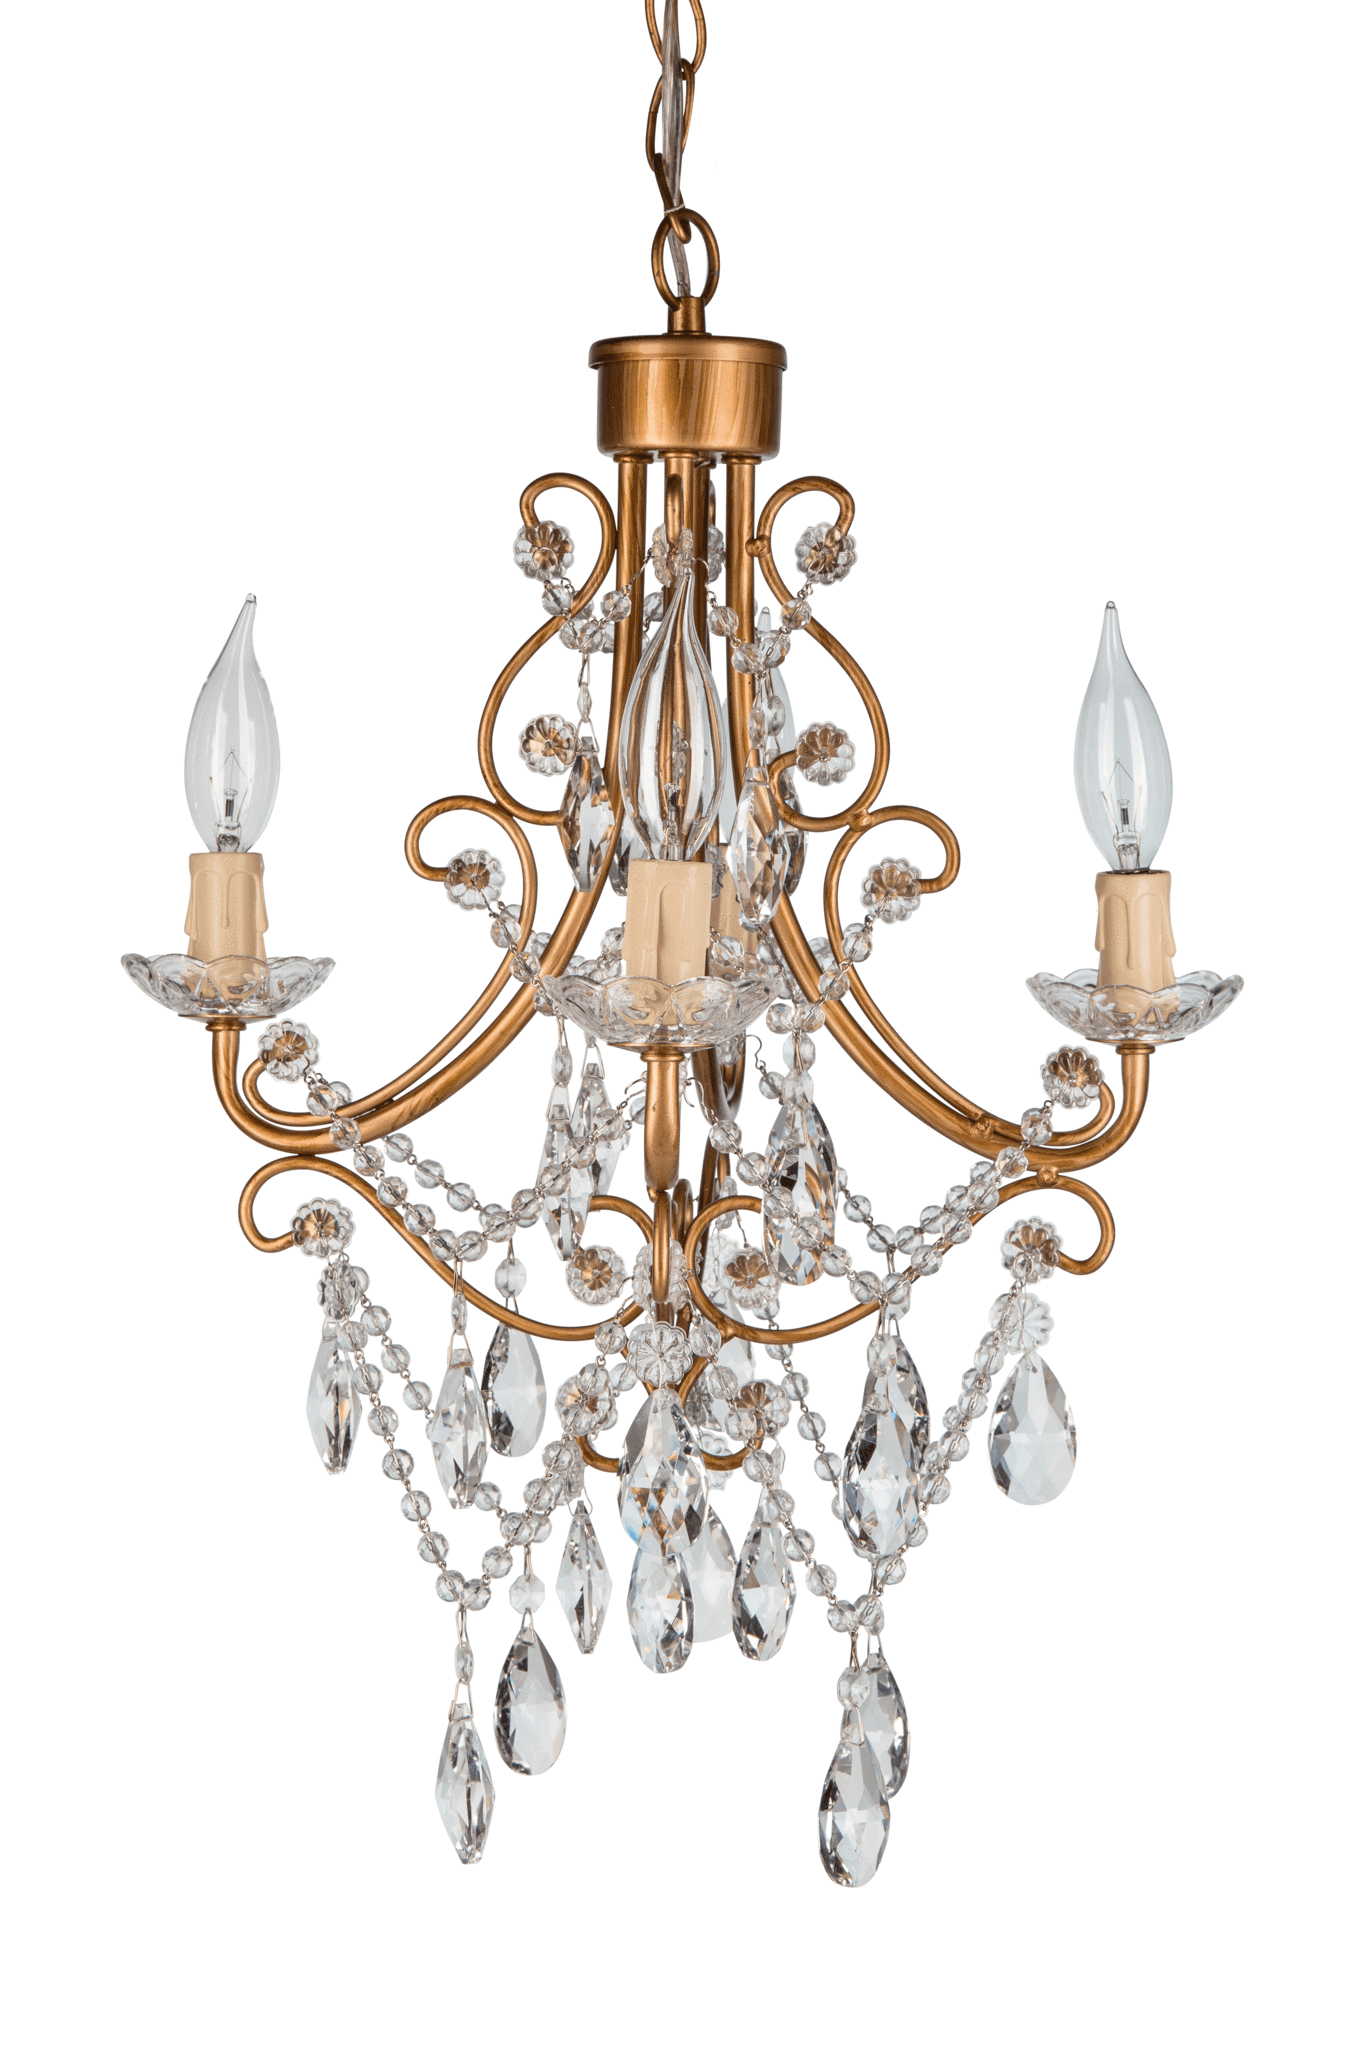 Dimensions 1425 length x 1425 width x 145 height madeleine antique crystal plug in chandelier mozeypictures Gallery